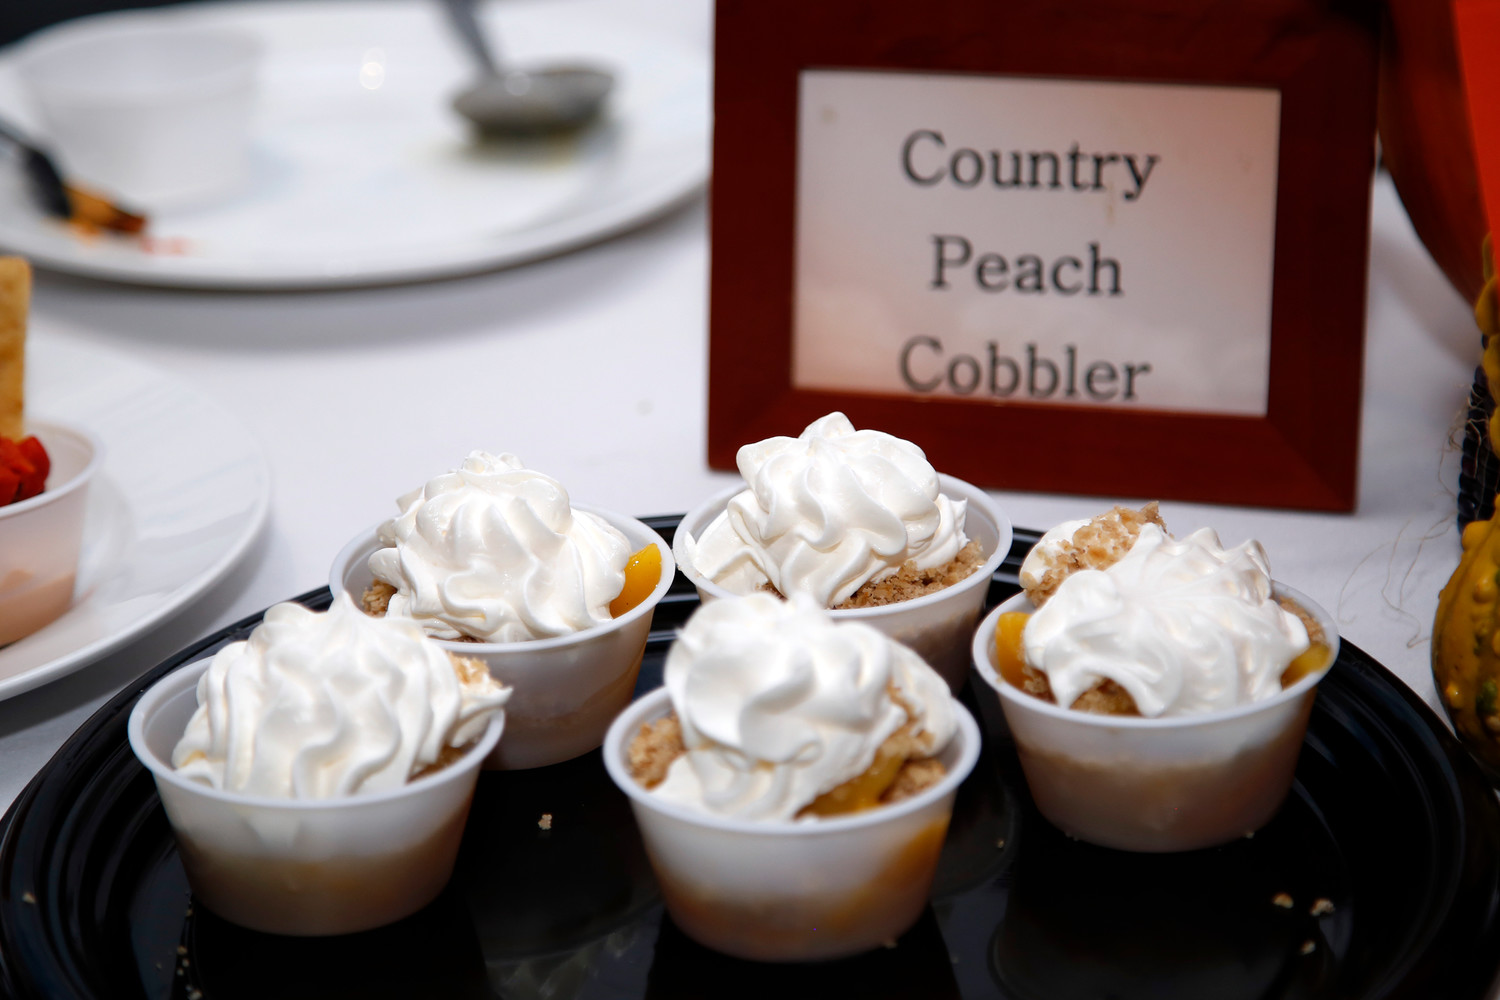 NuHealth at Nassau University Medical Center offered its best country peach cobbler.